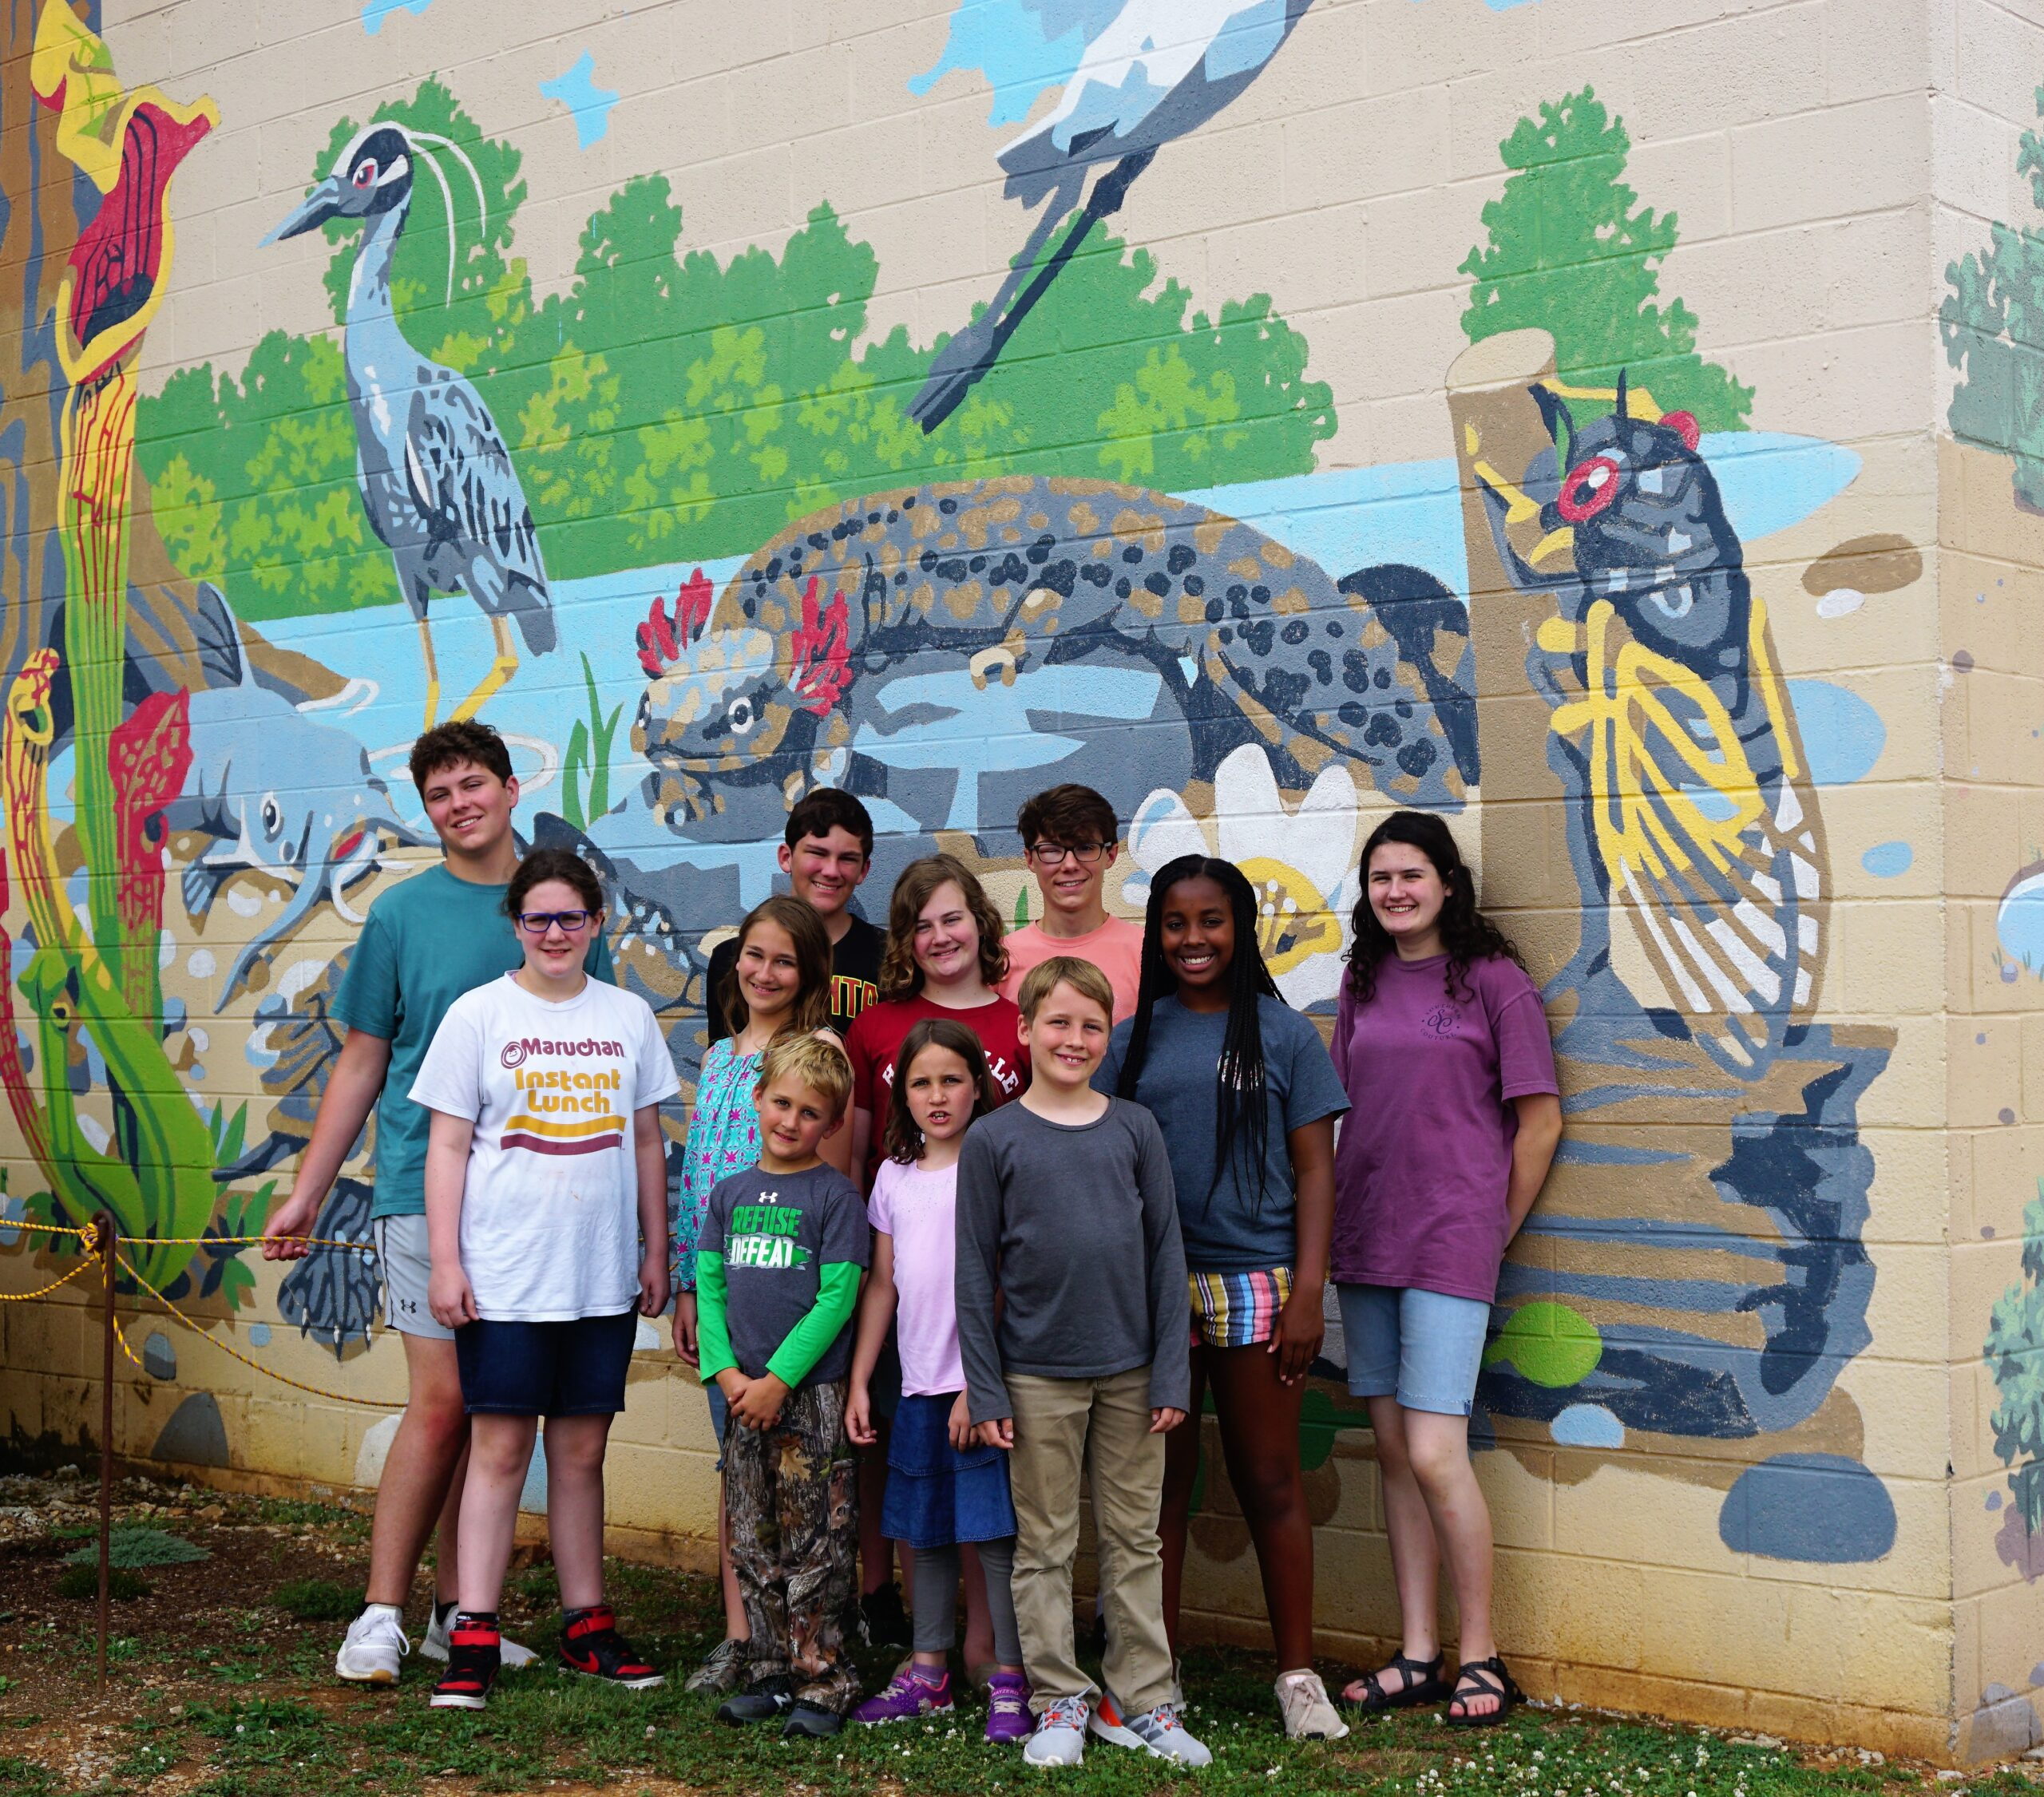 Photo of cousins in front of art mural at Lowe Mill in Huntsville during cousin camp.